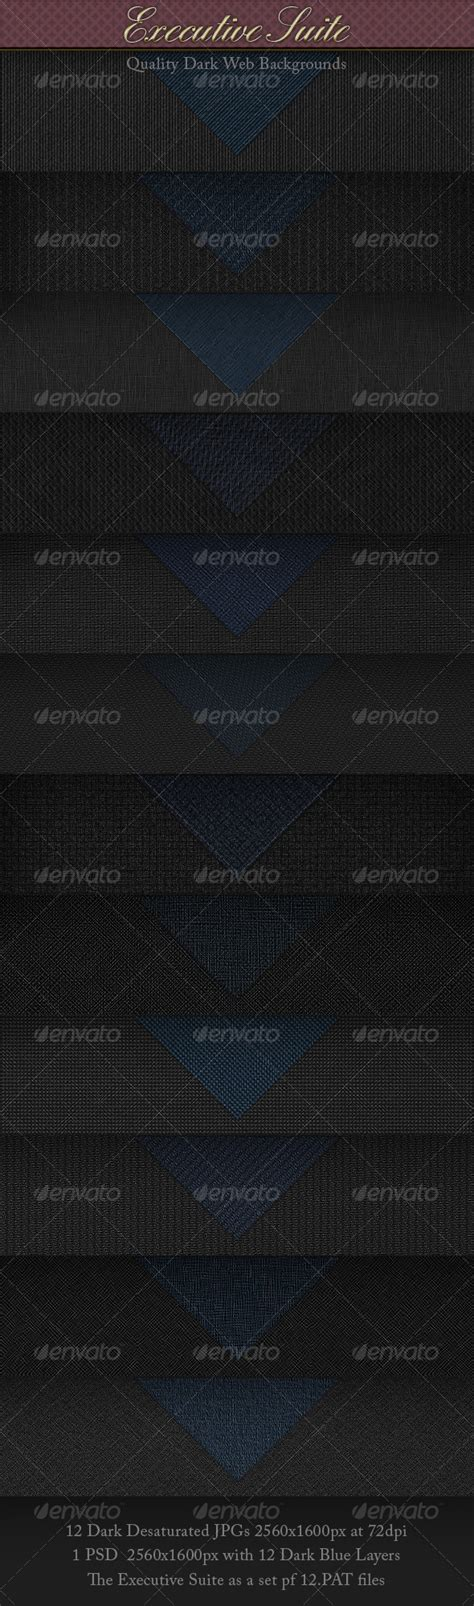 pinstripe pattern in photoshop executive business suit fabric backgrounds by joiaco